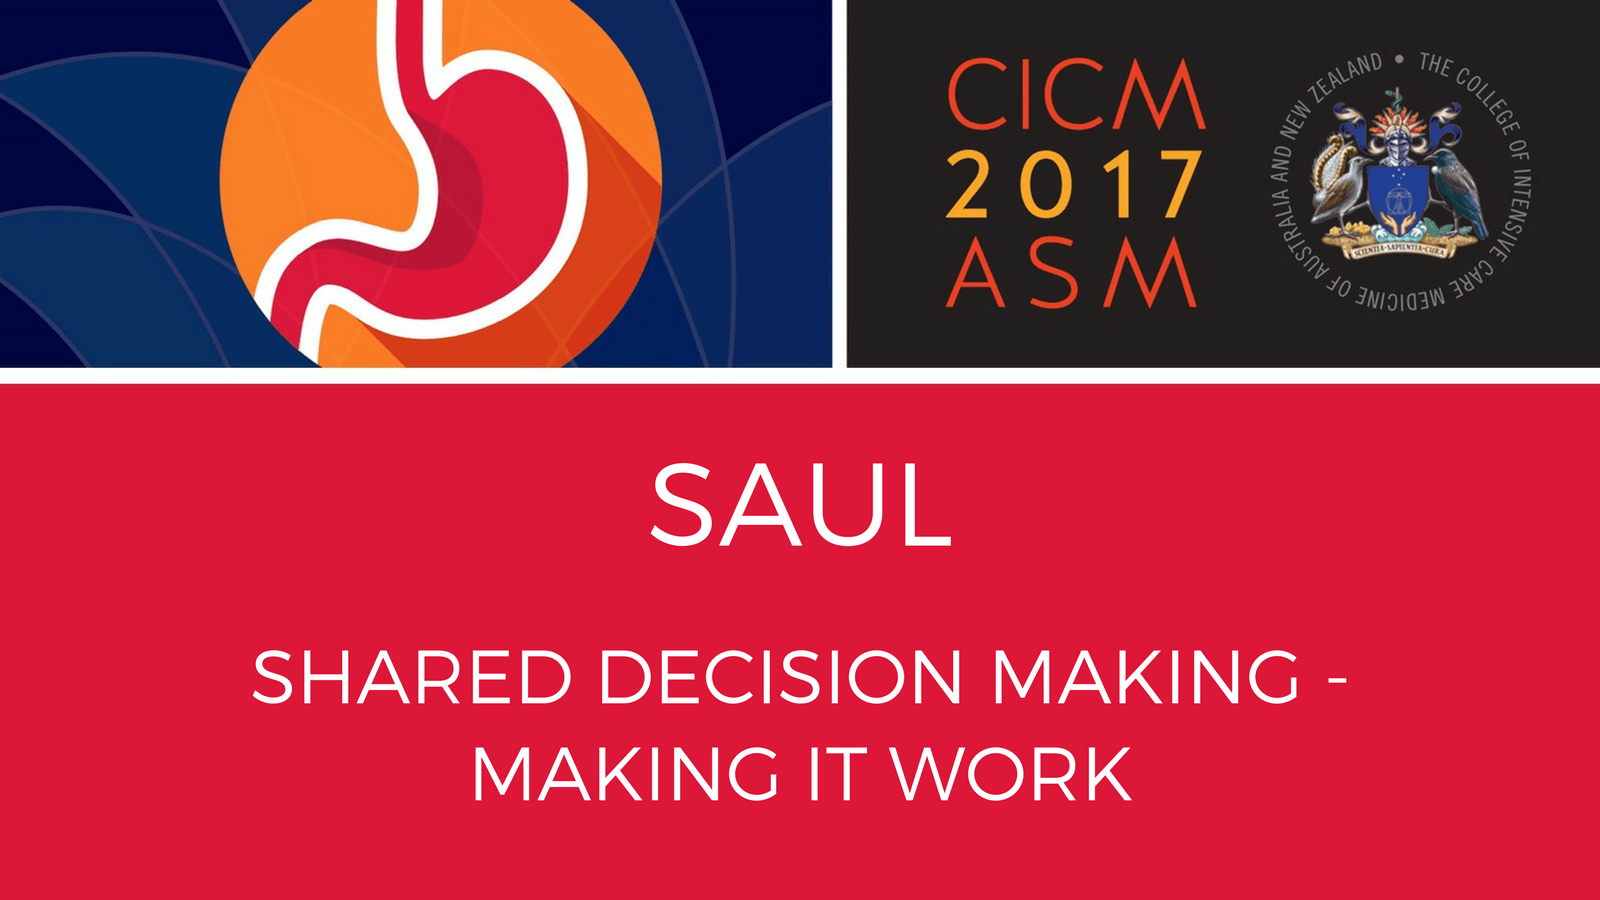 Shared decision making - making it work